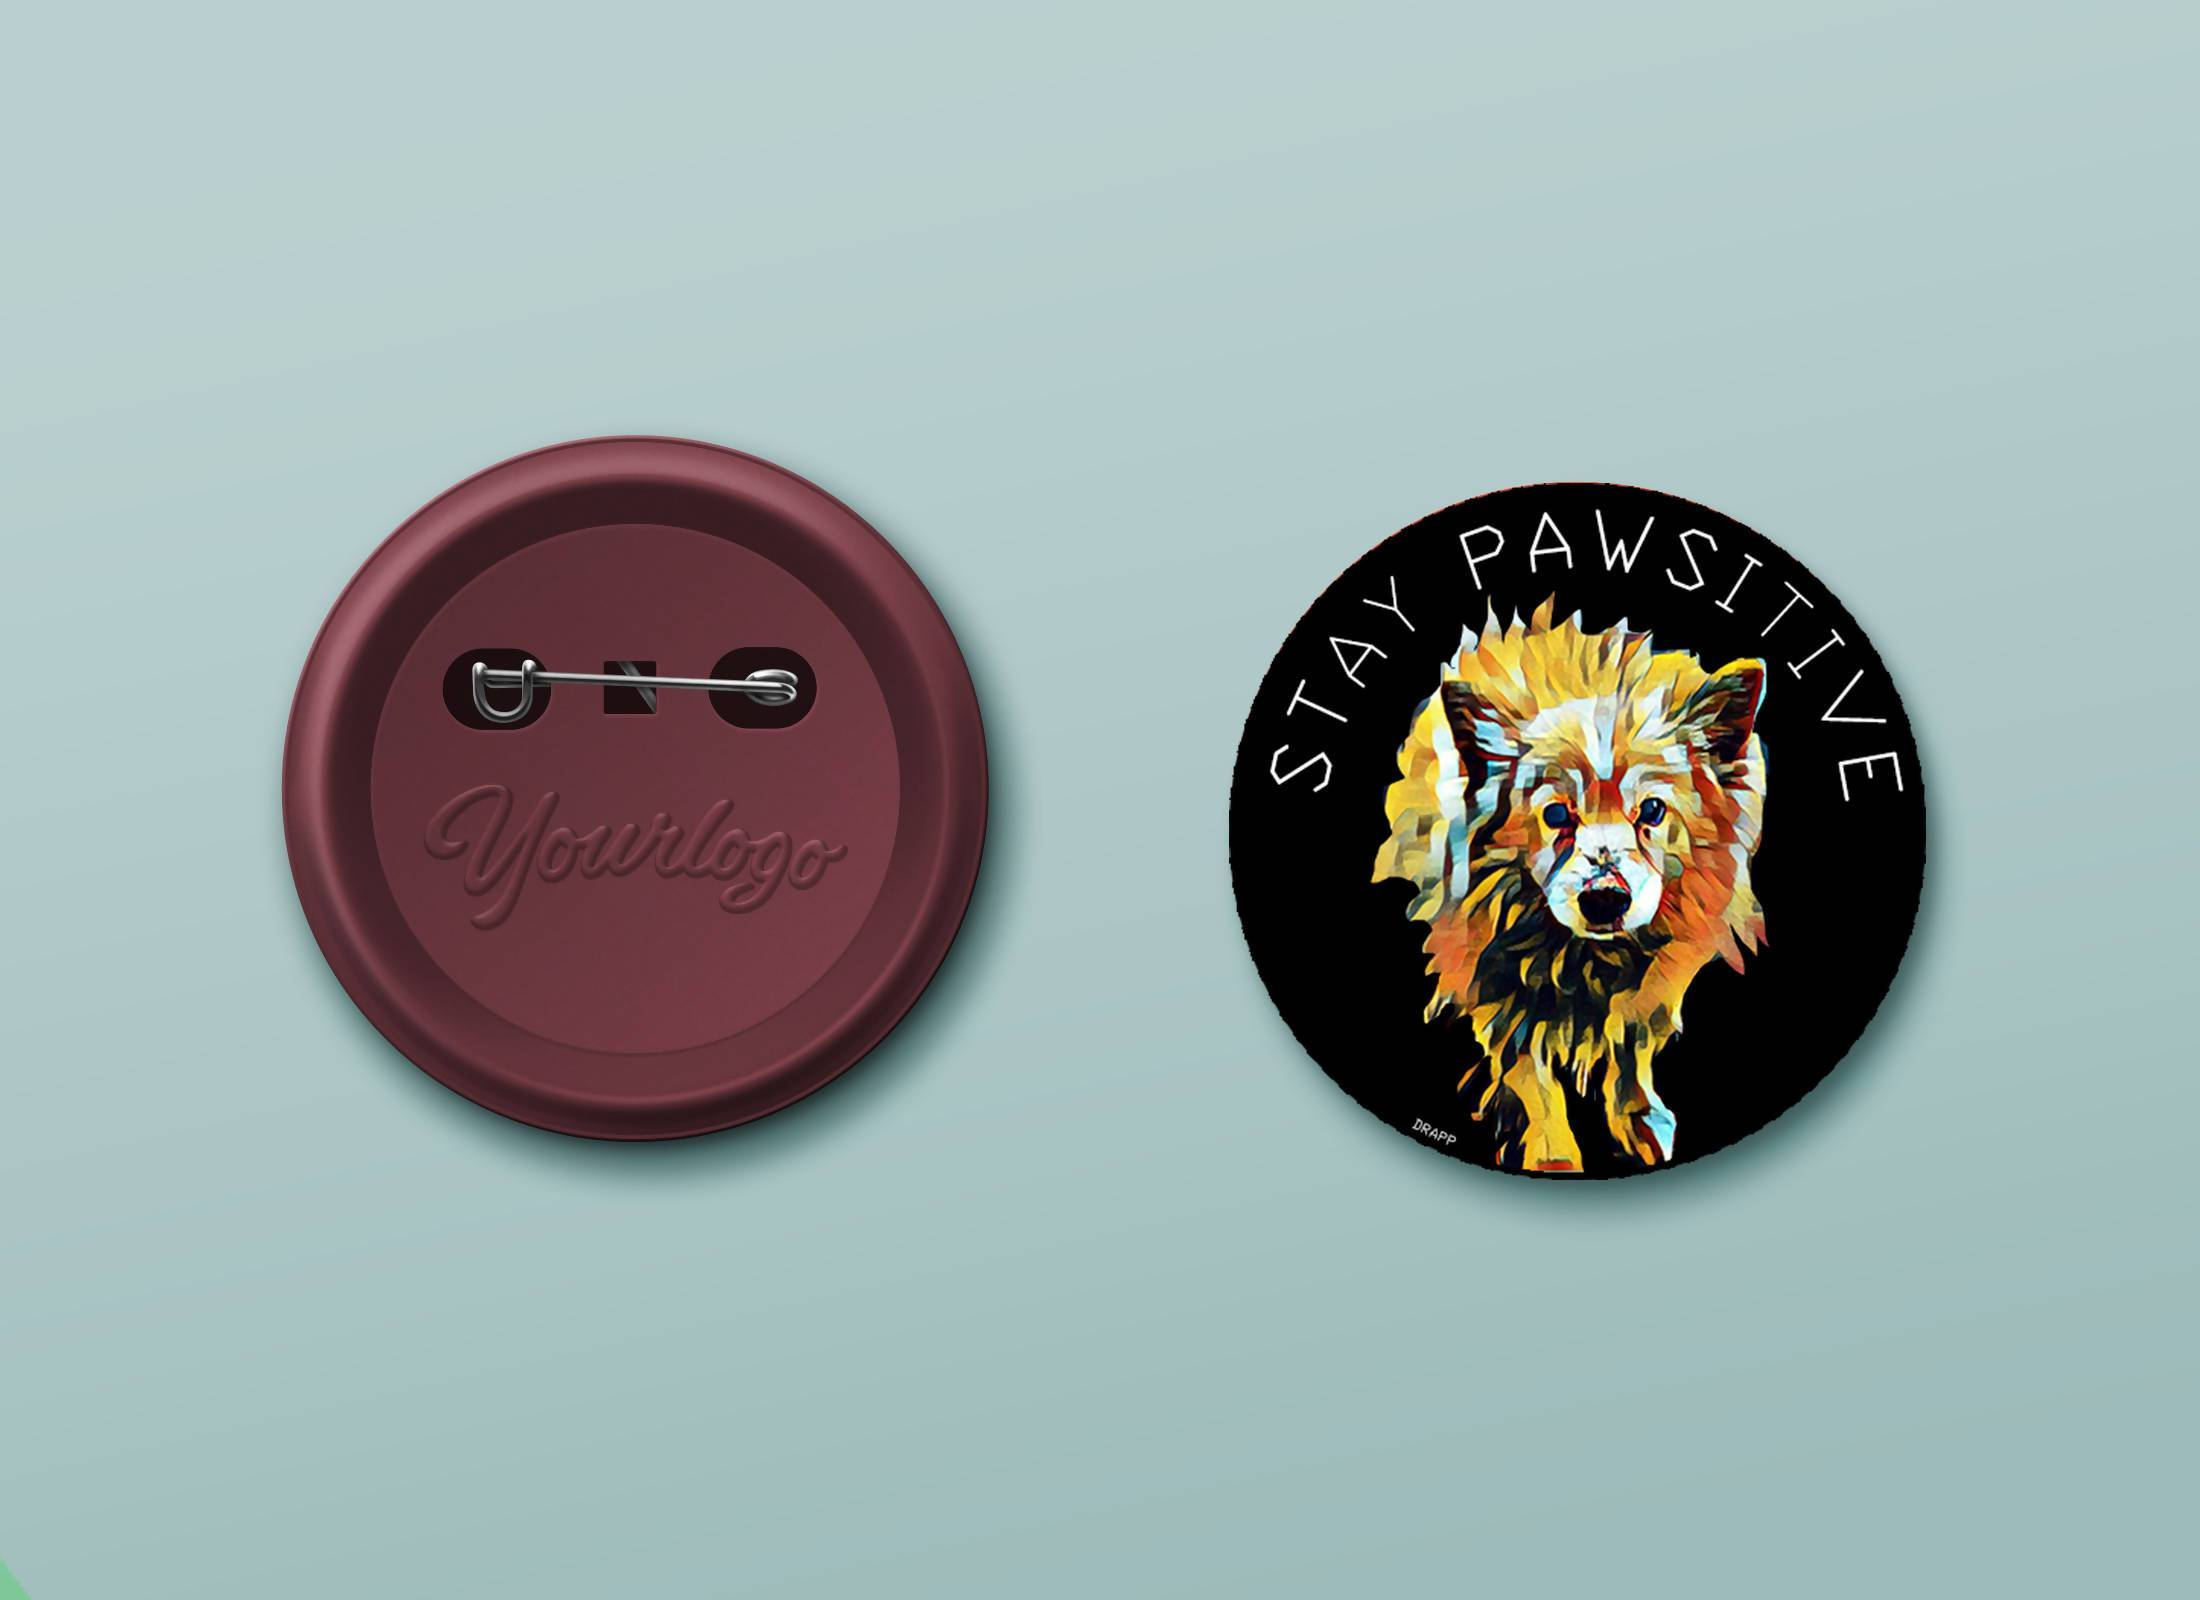 Stay pawsitive button badge - 21 AD